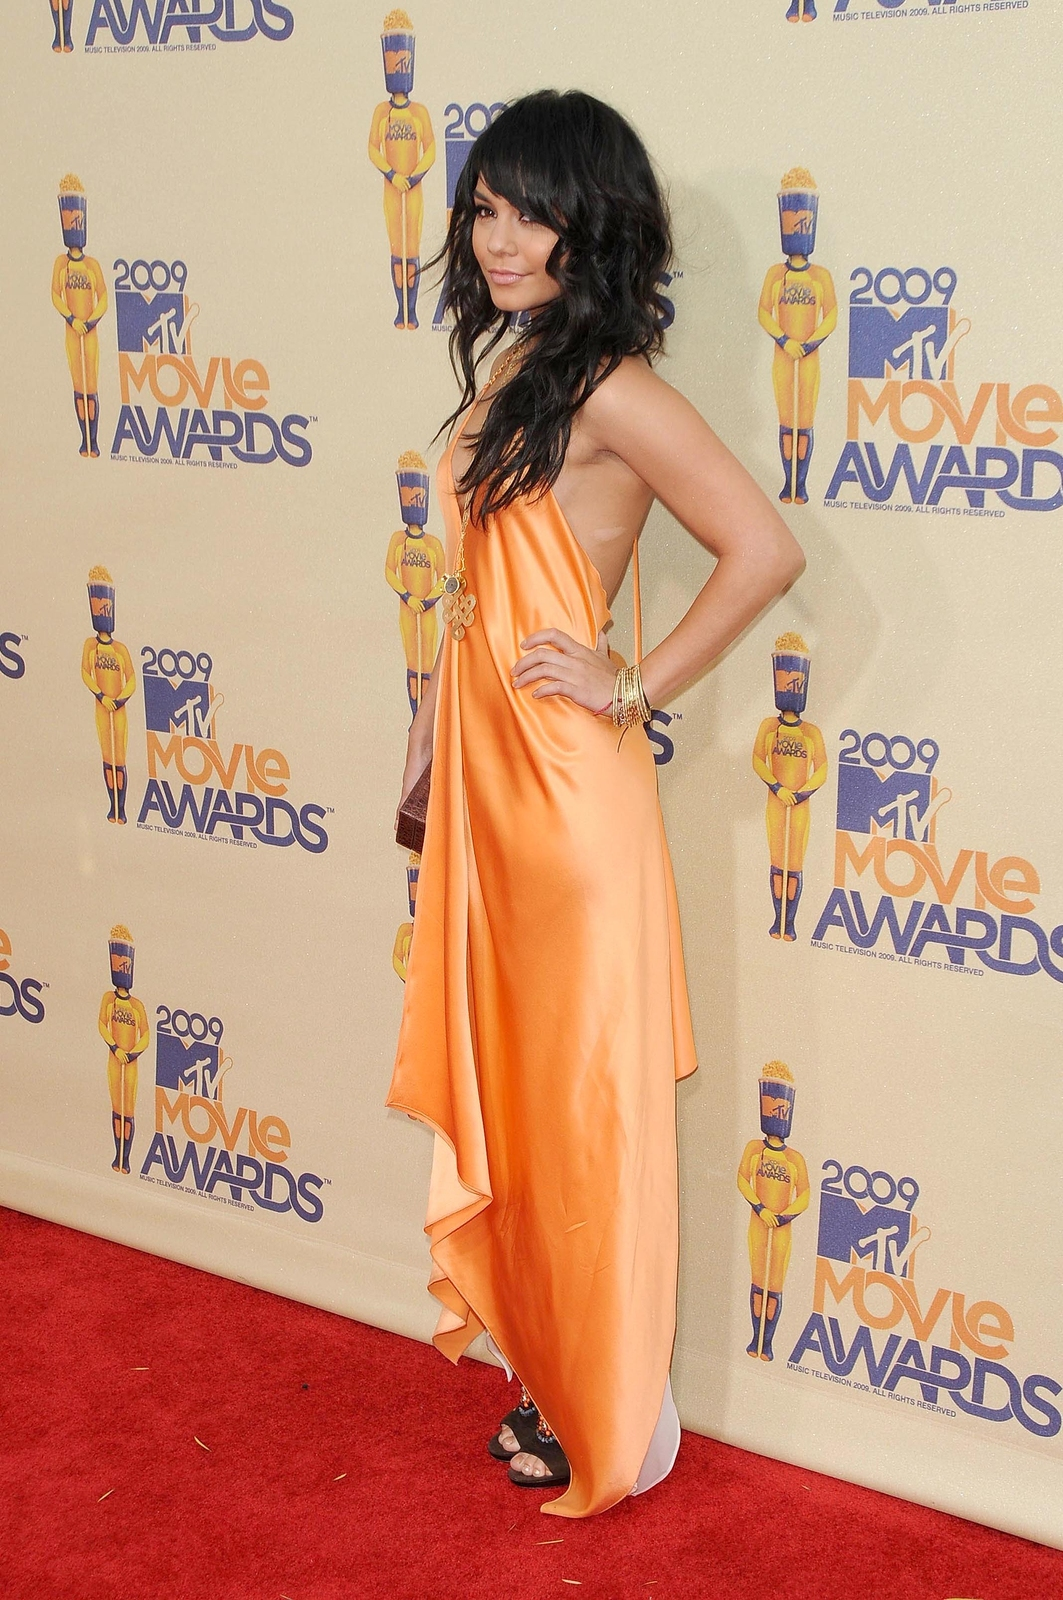 Vanessa Hudgens at the 2009 MTV Movie Awards, 2009, right before filming Photo: S Buckley / Shutterstock